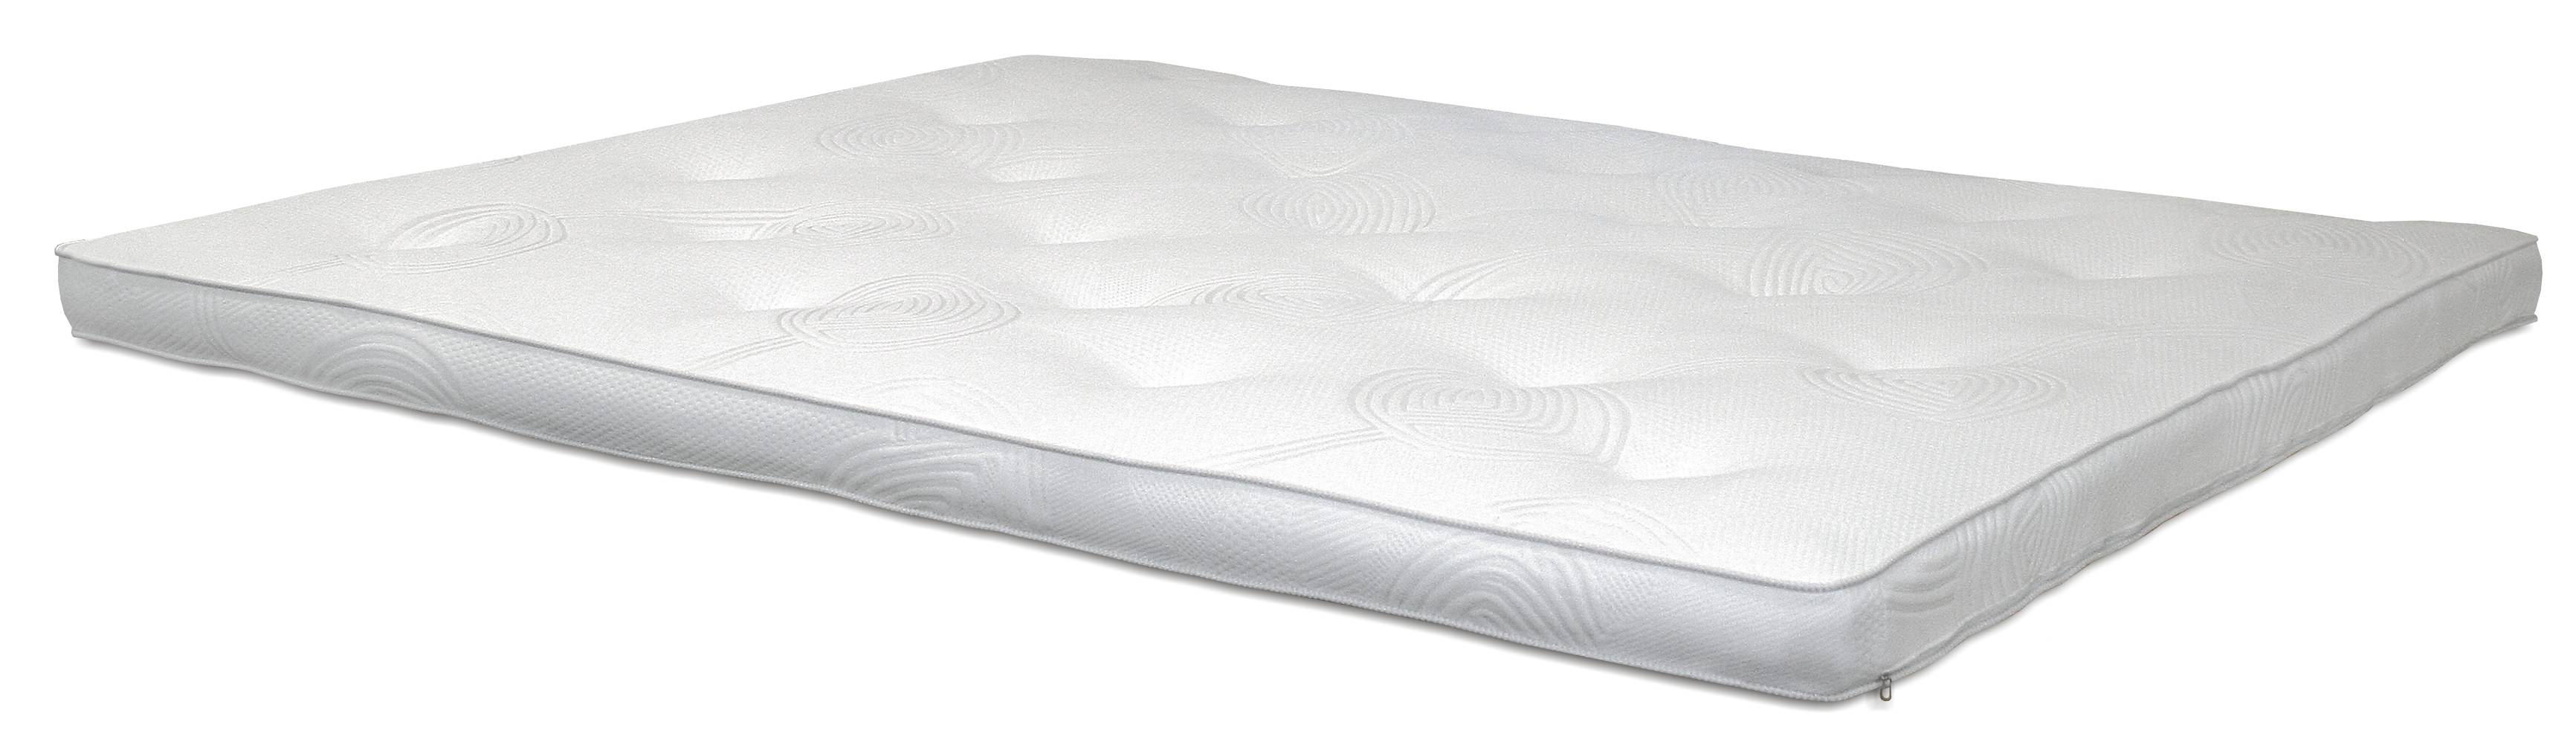 GRAND TOP mattress WHITE 1 16